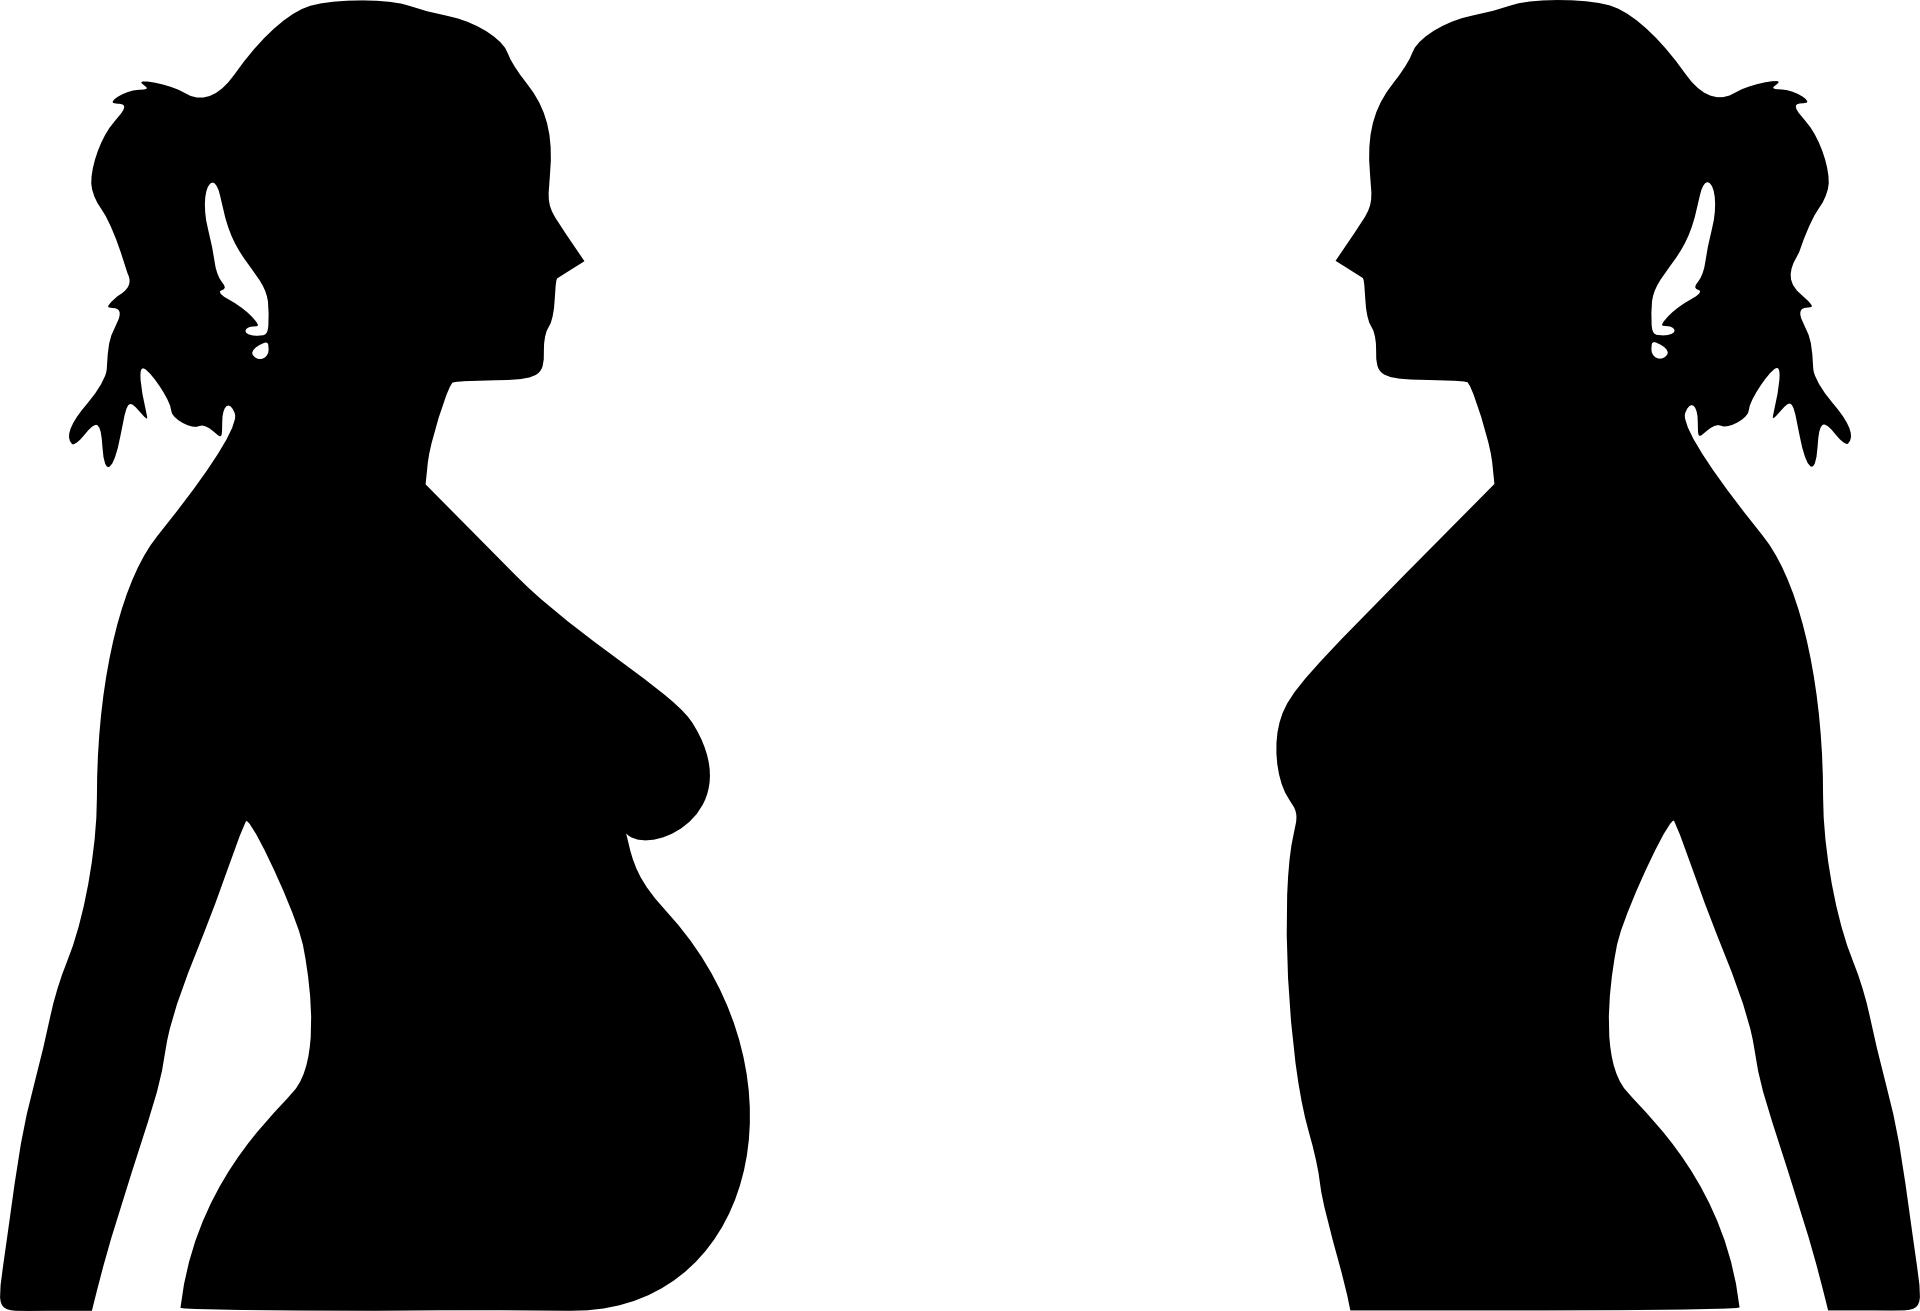 Pregnant Silhouette Clipart - Clipart Kid